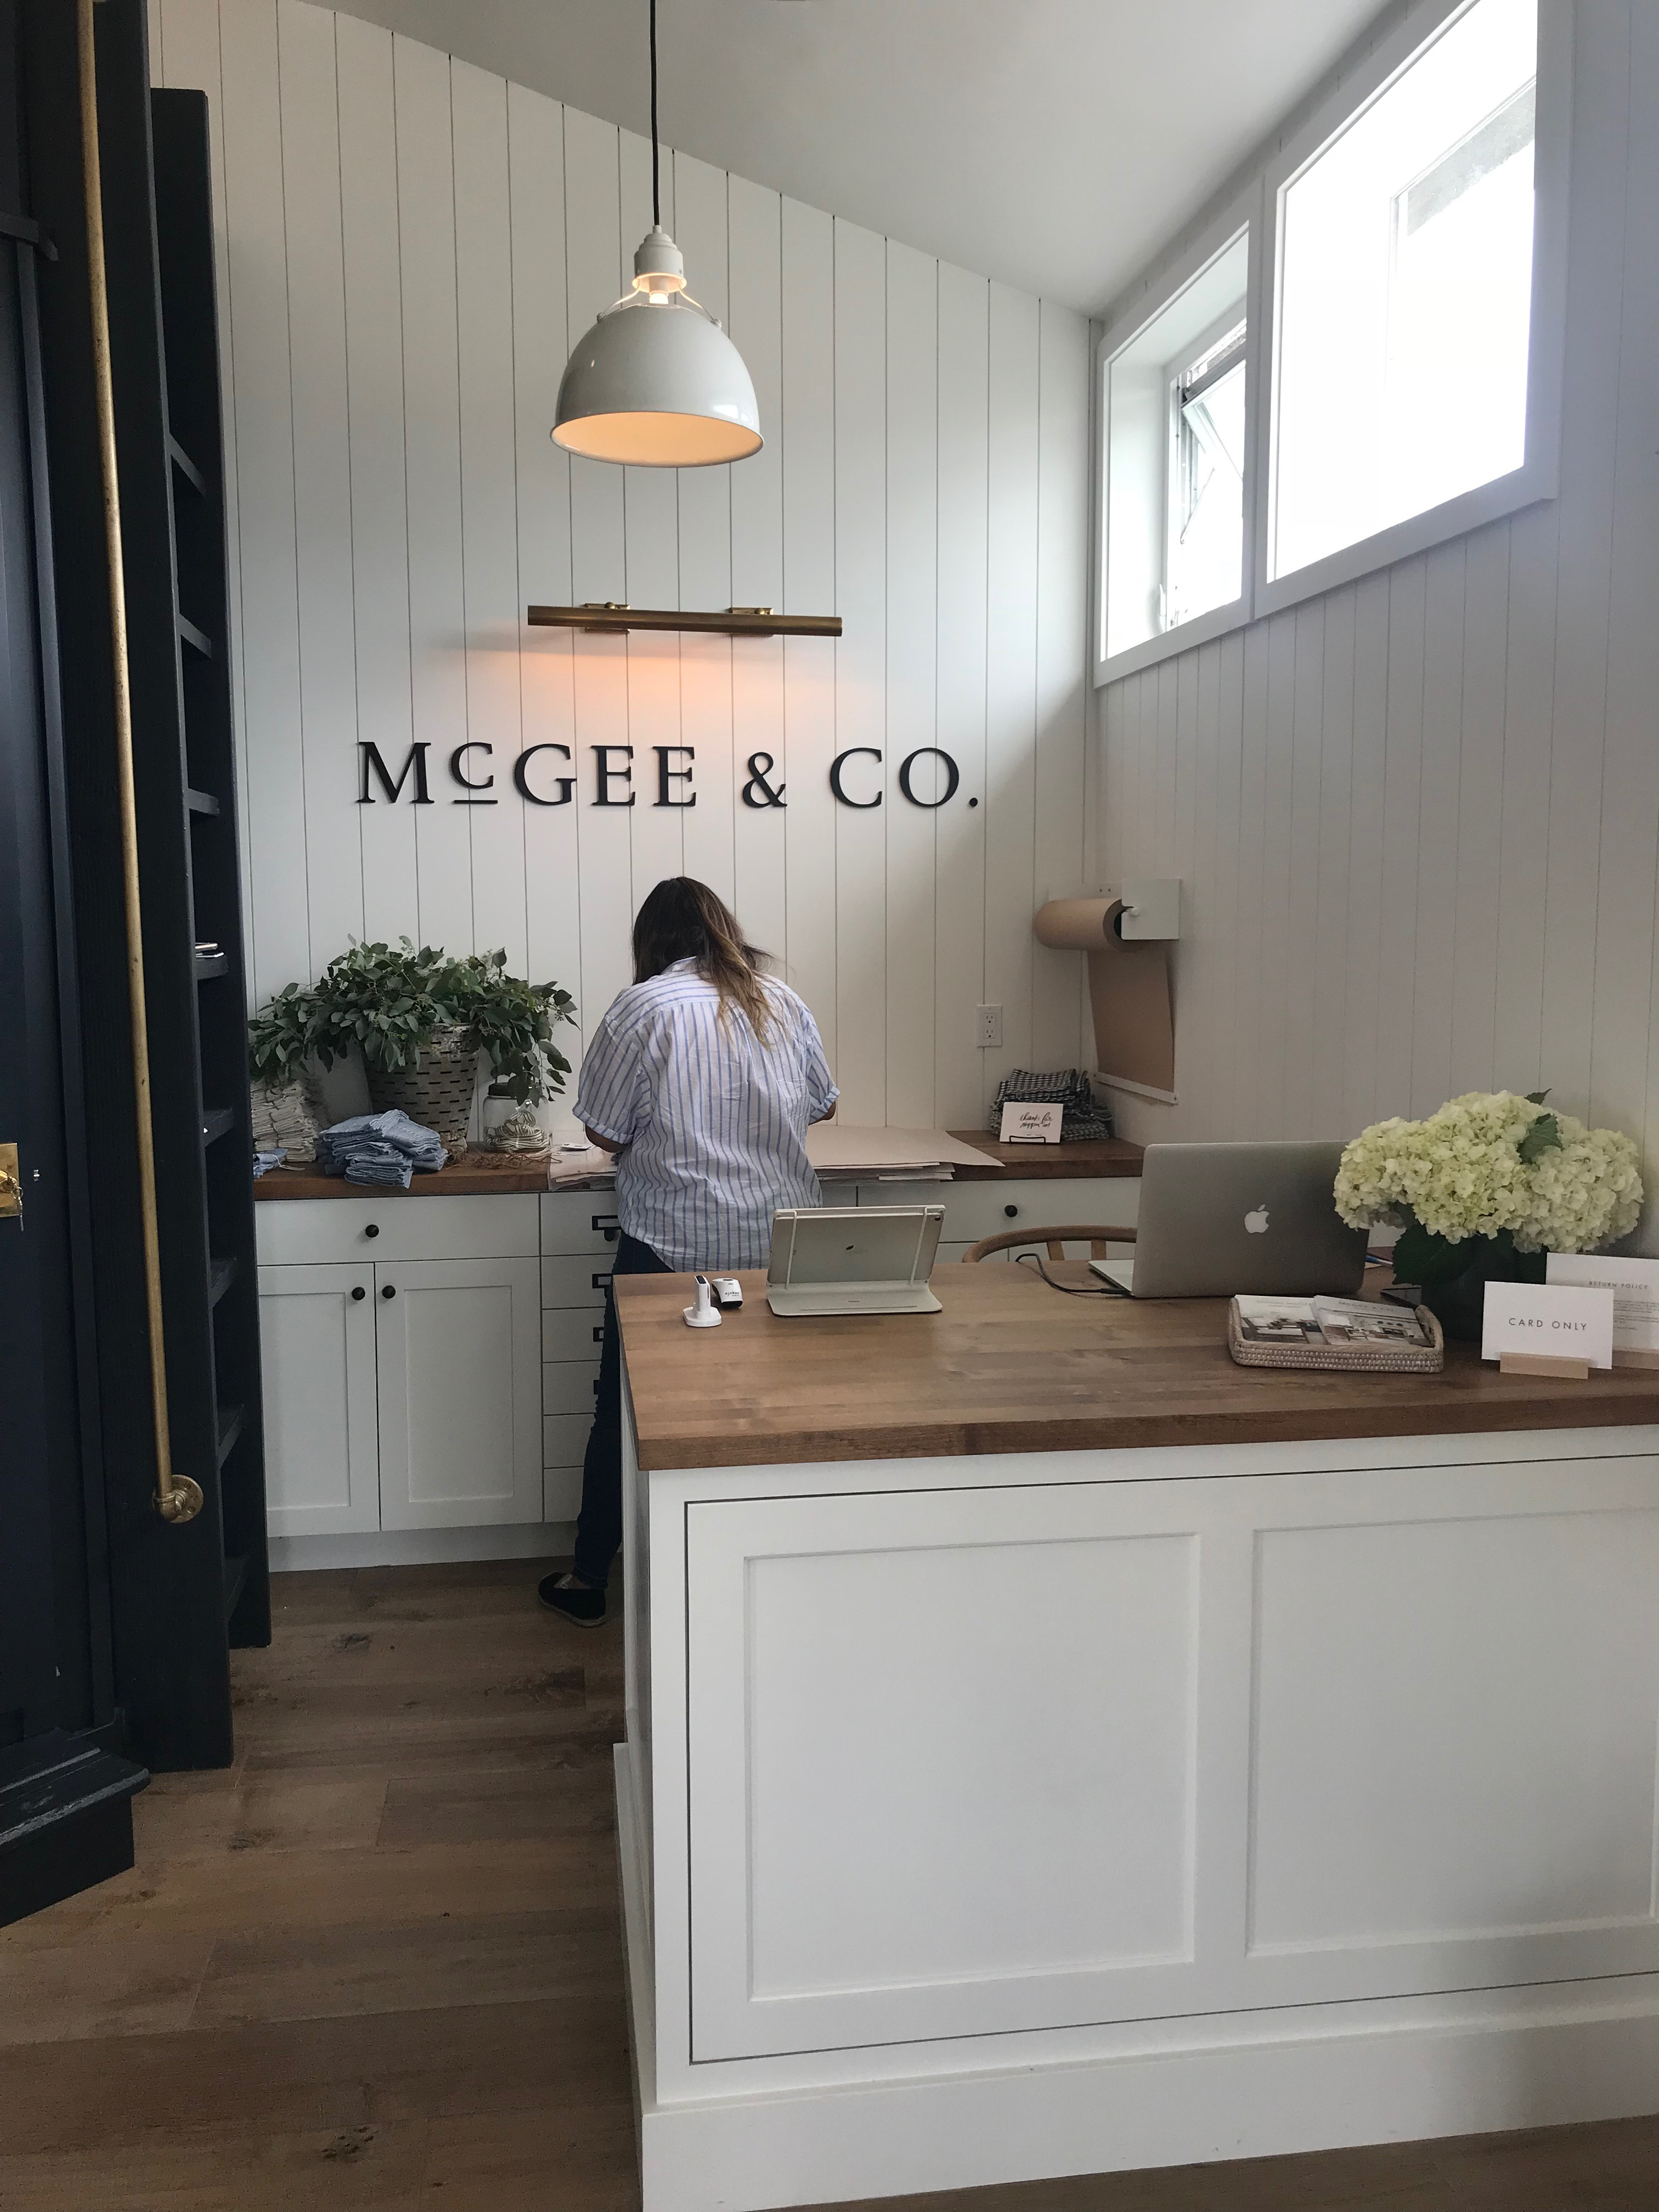 All about my visit to McGee & Co. store in Costa Mesa